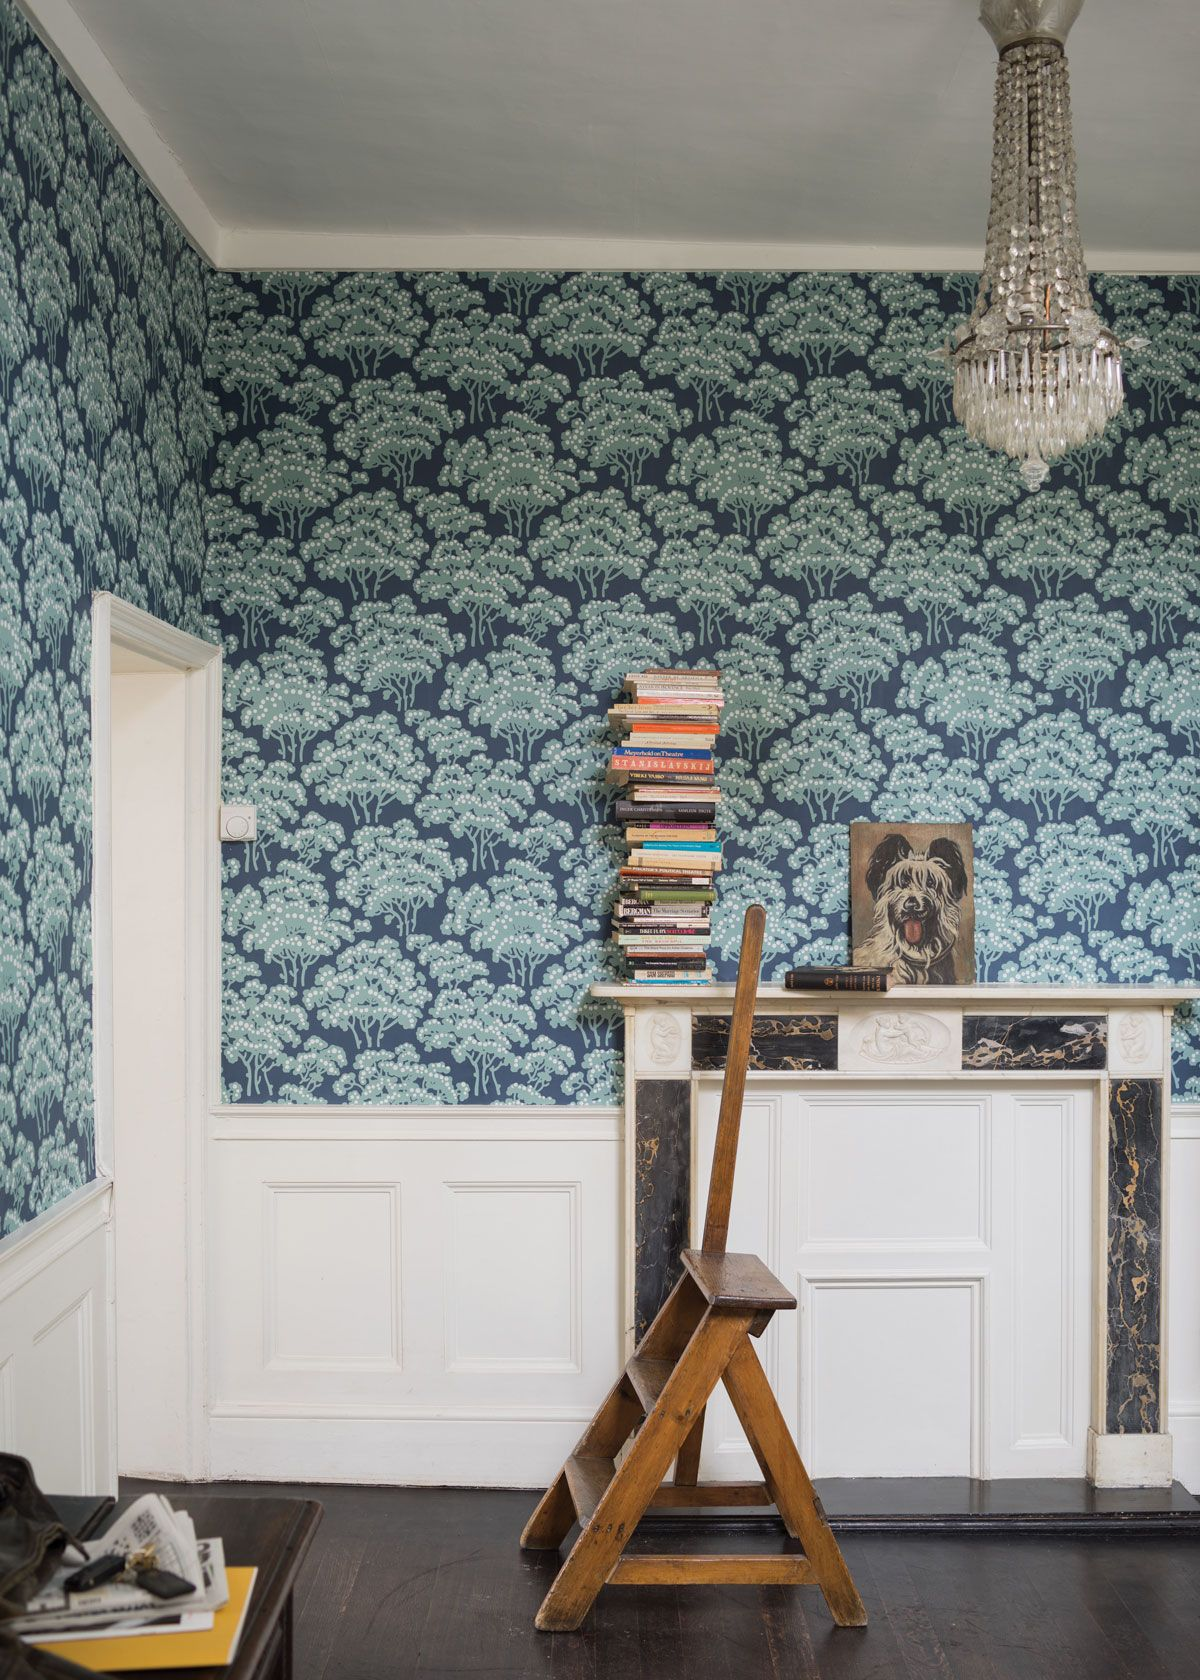 Farrow and ball paint online - Hornbeam Wallpaper From The Latest And Greatest Collection By Farrow Ball With Hornbeam Trees Printed In Sea Green On An Indigo Ground Buy Online Today